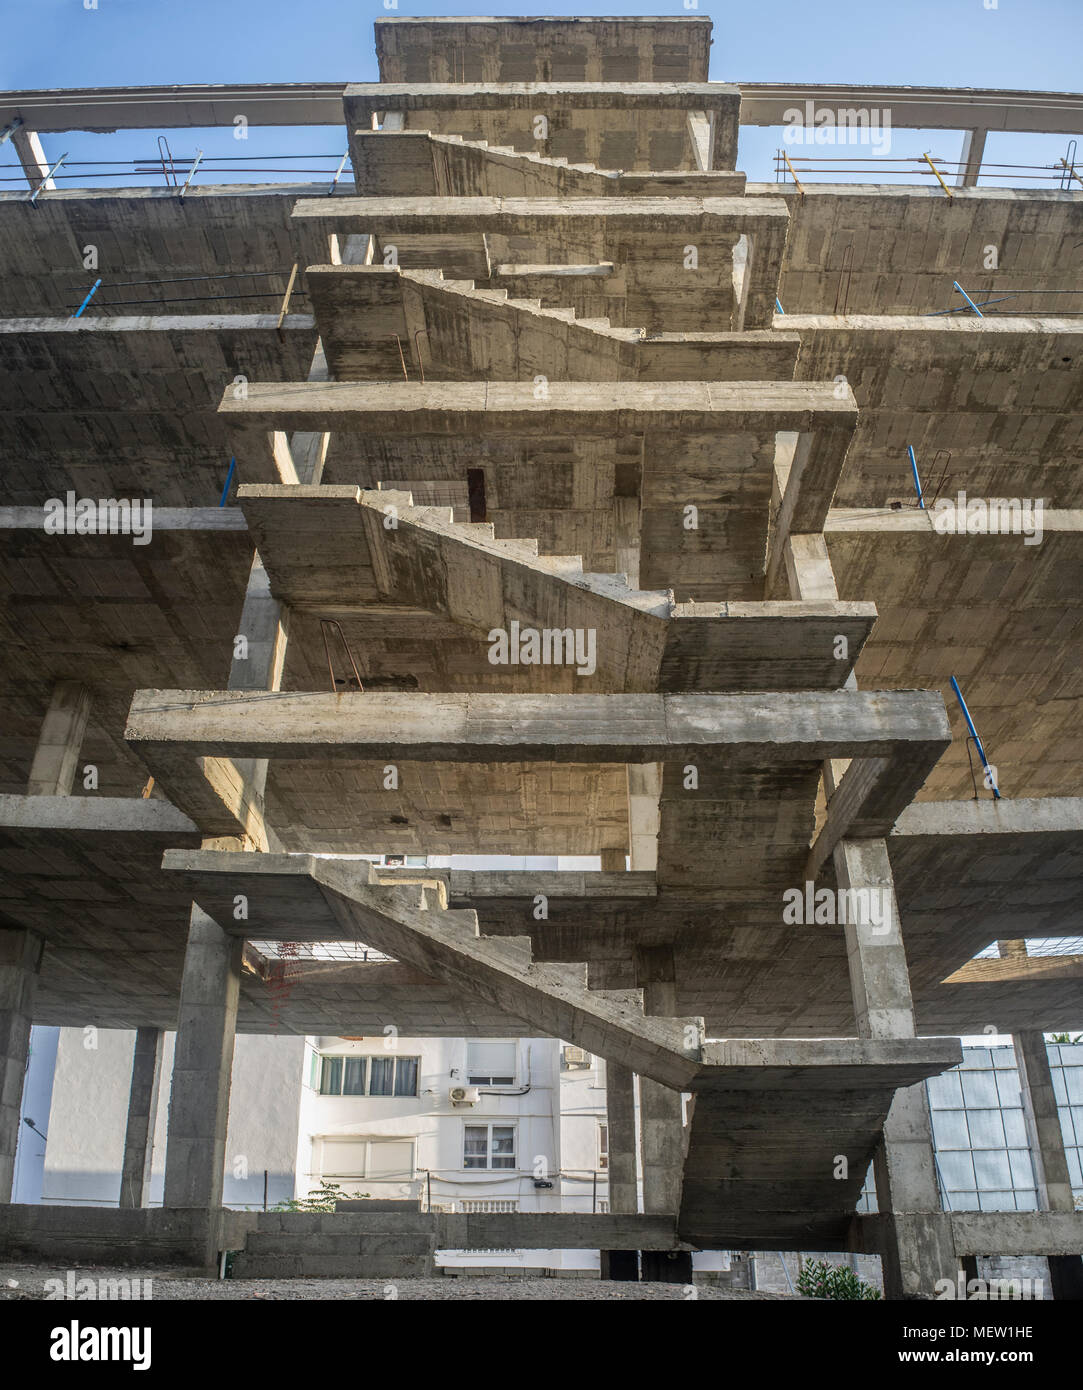 Exterior Staircase Structure Of A New Apartment Building